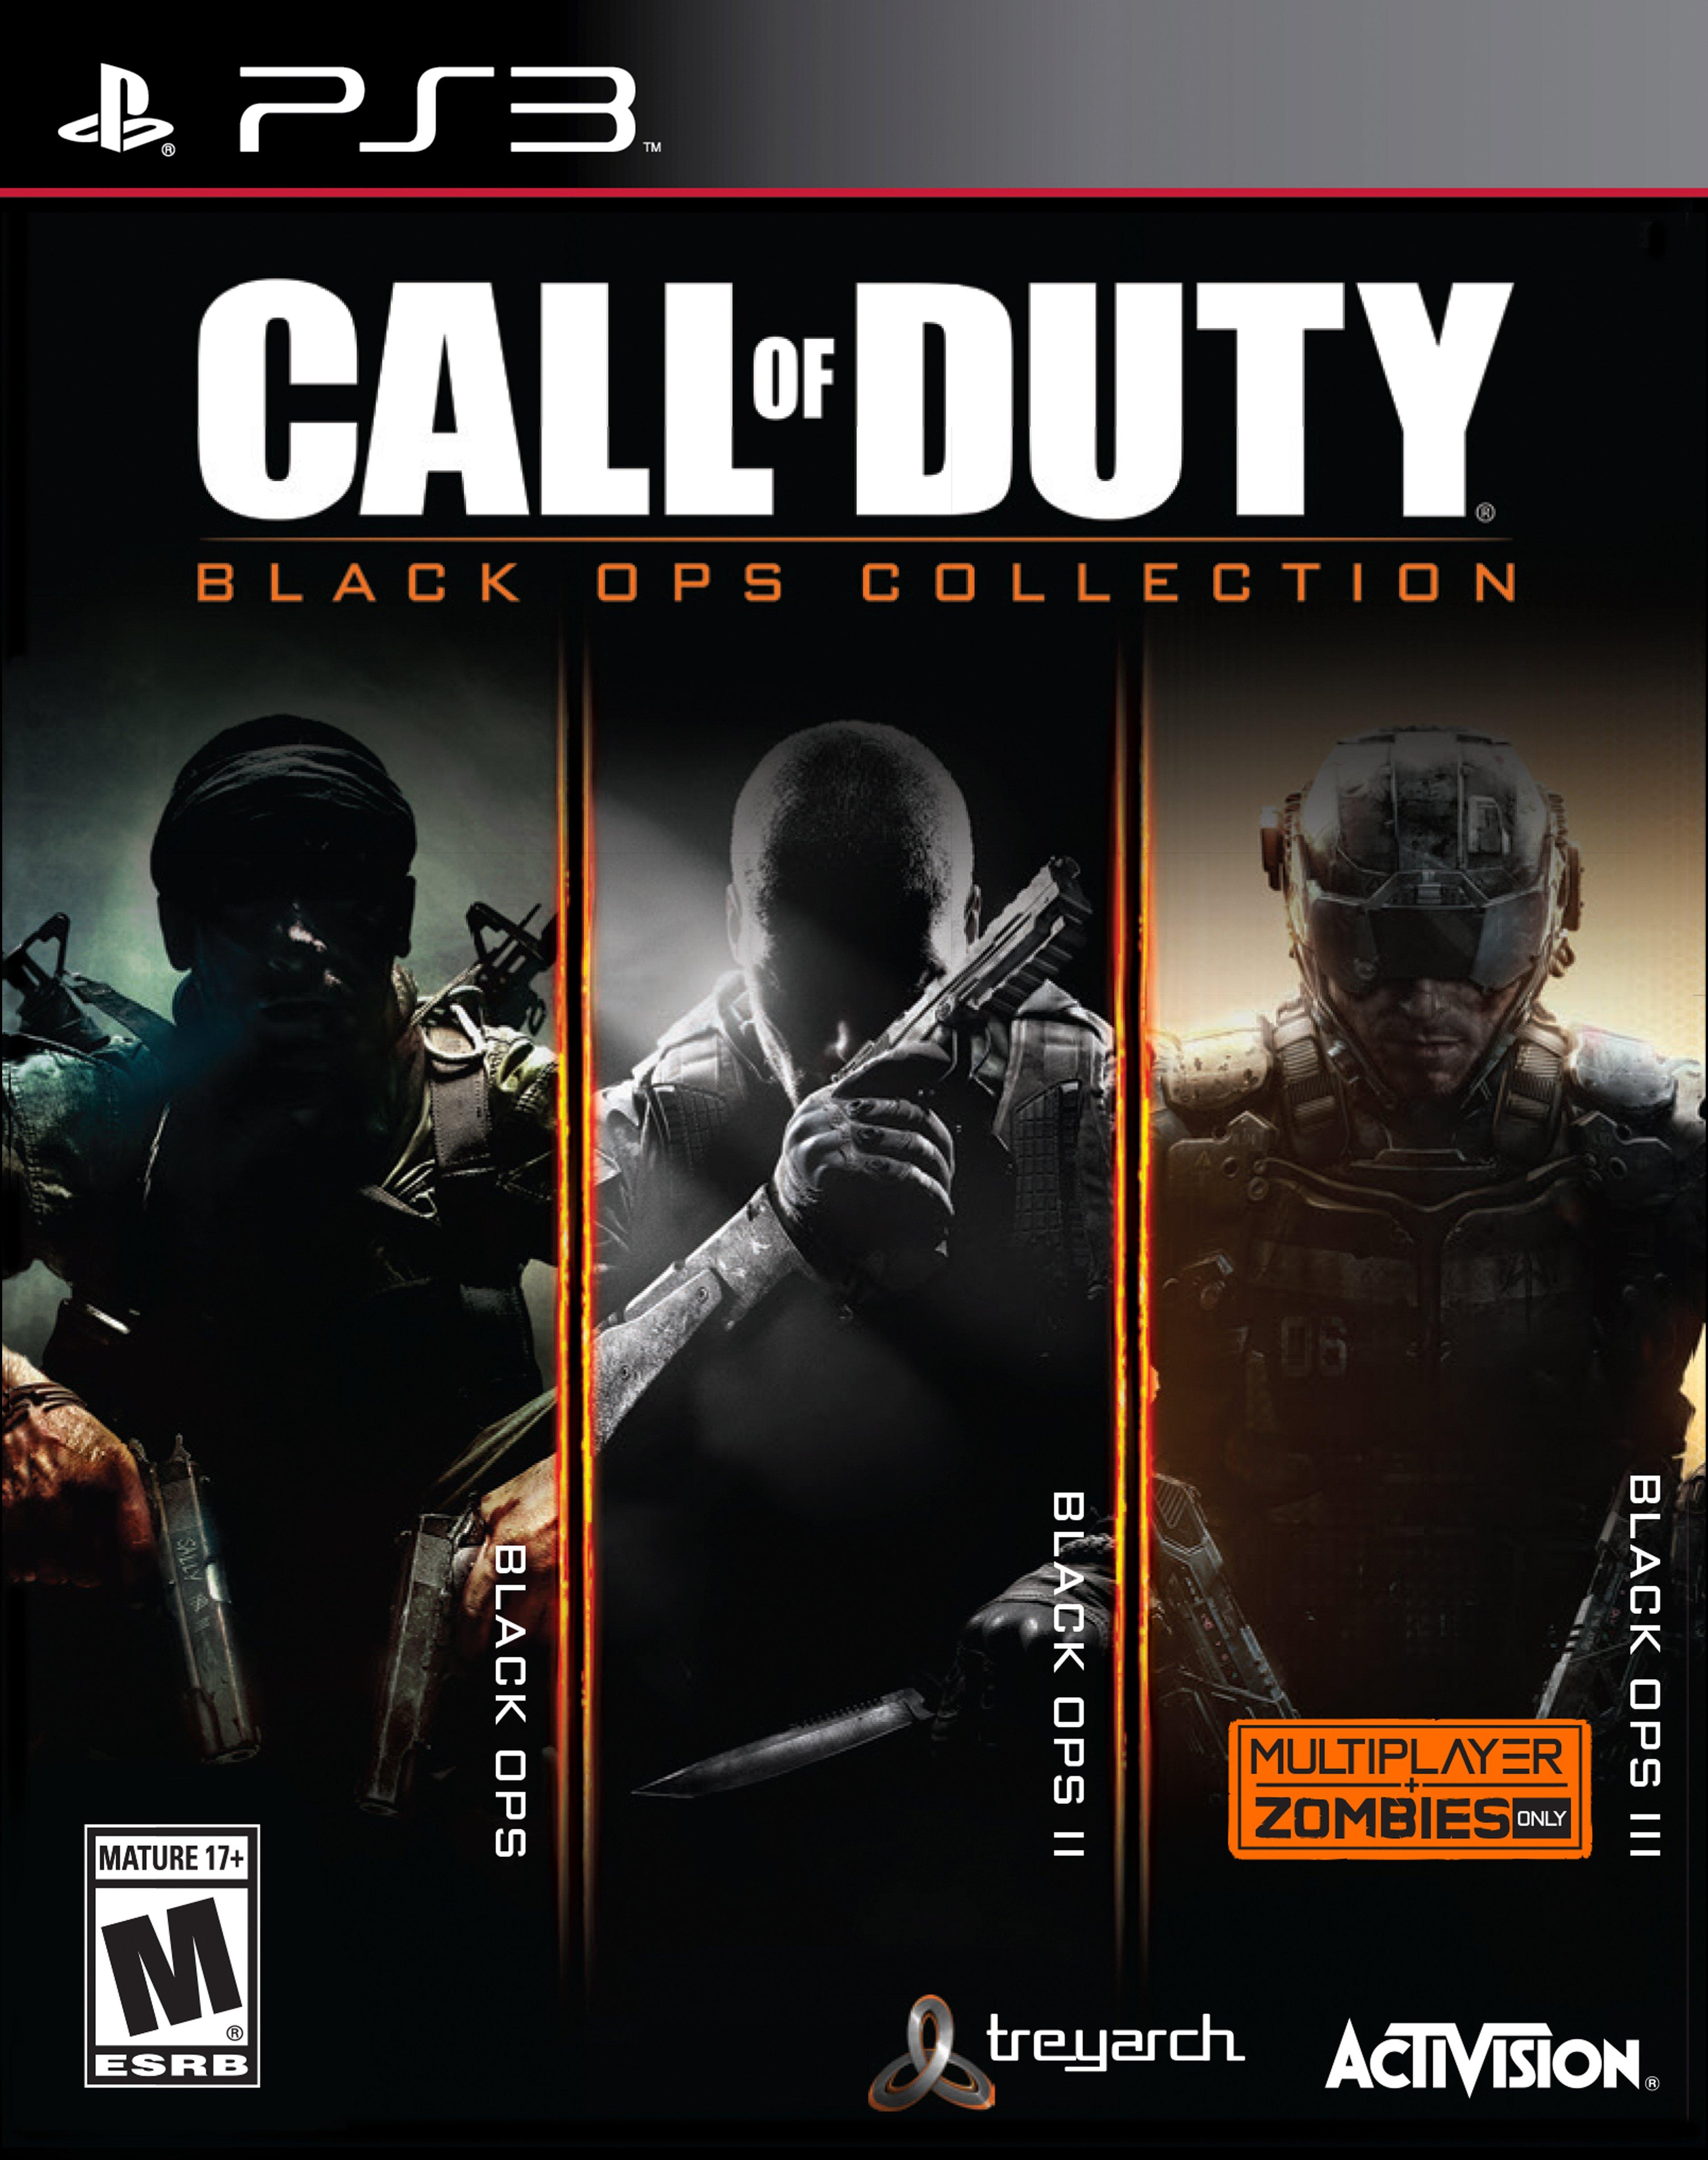 Call of Duty: Black Ops Collection 1-3 | PlayStation 3 | GameStop